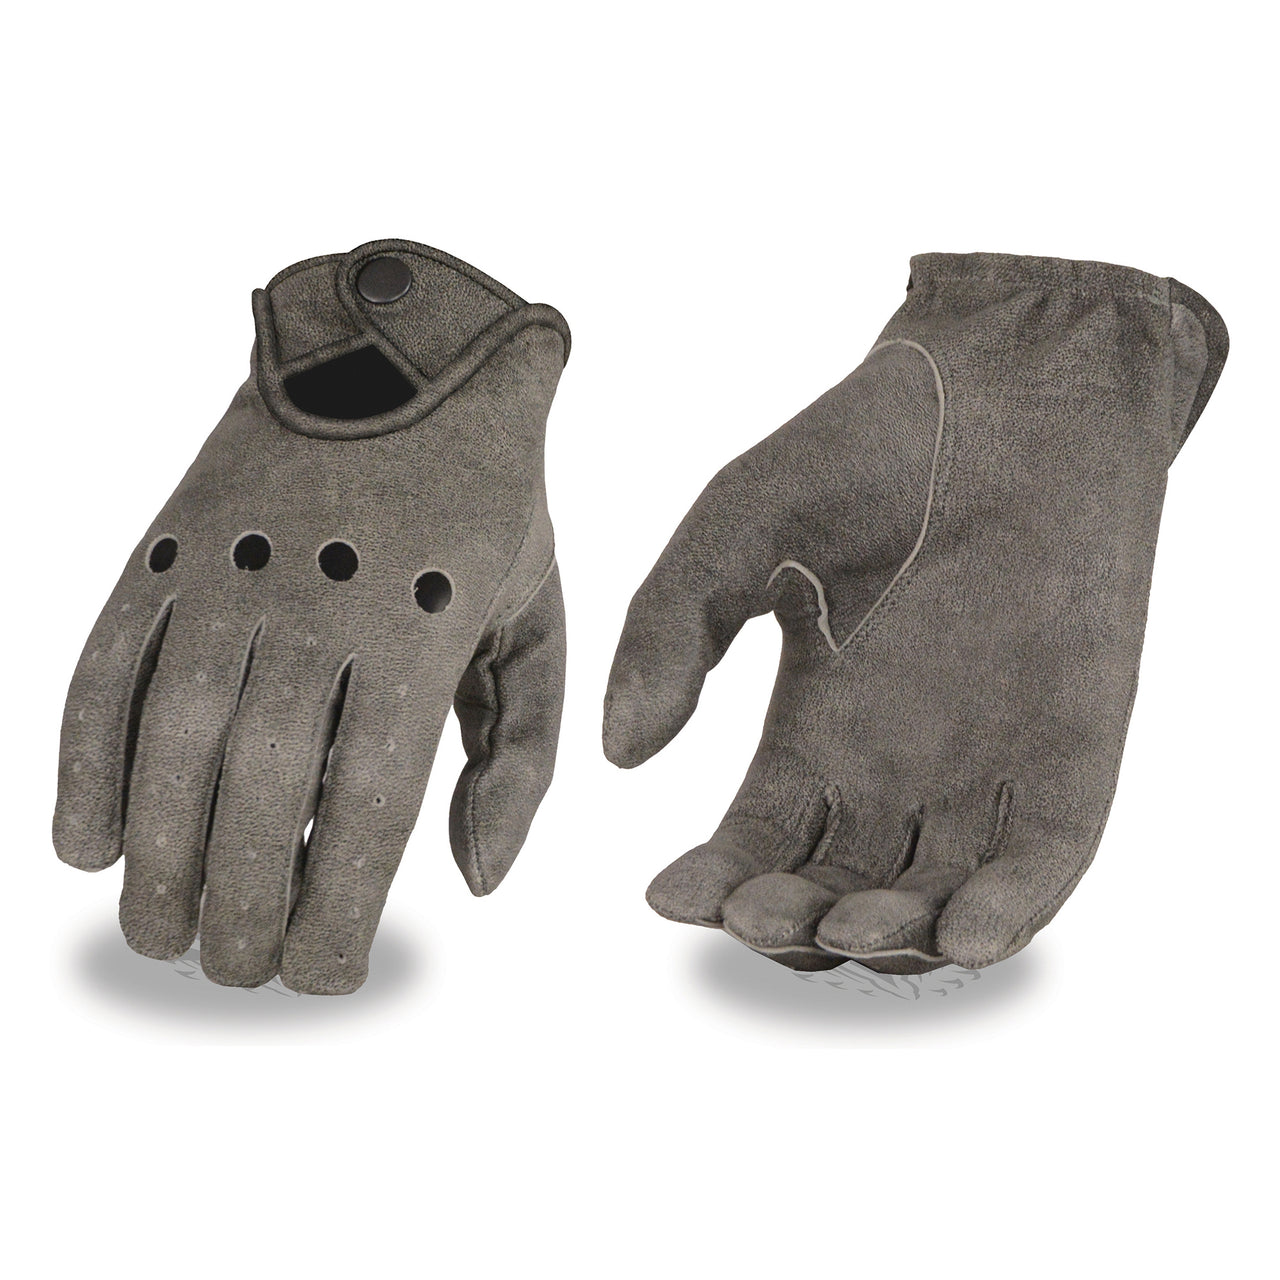 Men's Distressed Grey Leather Driving Gloves with Wrist Snap - HighwayLeather